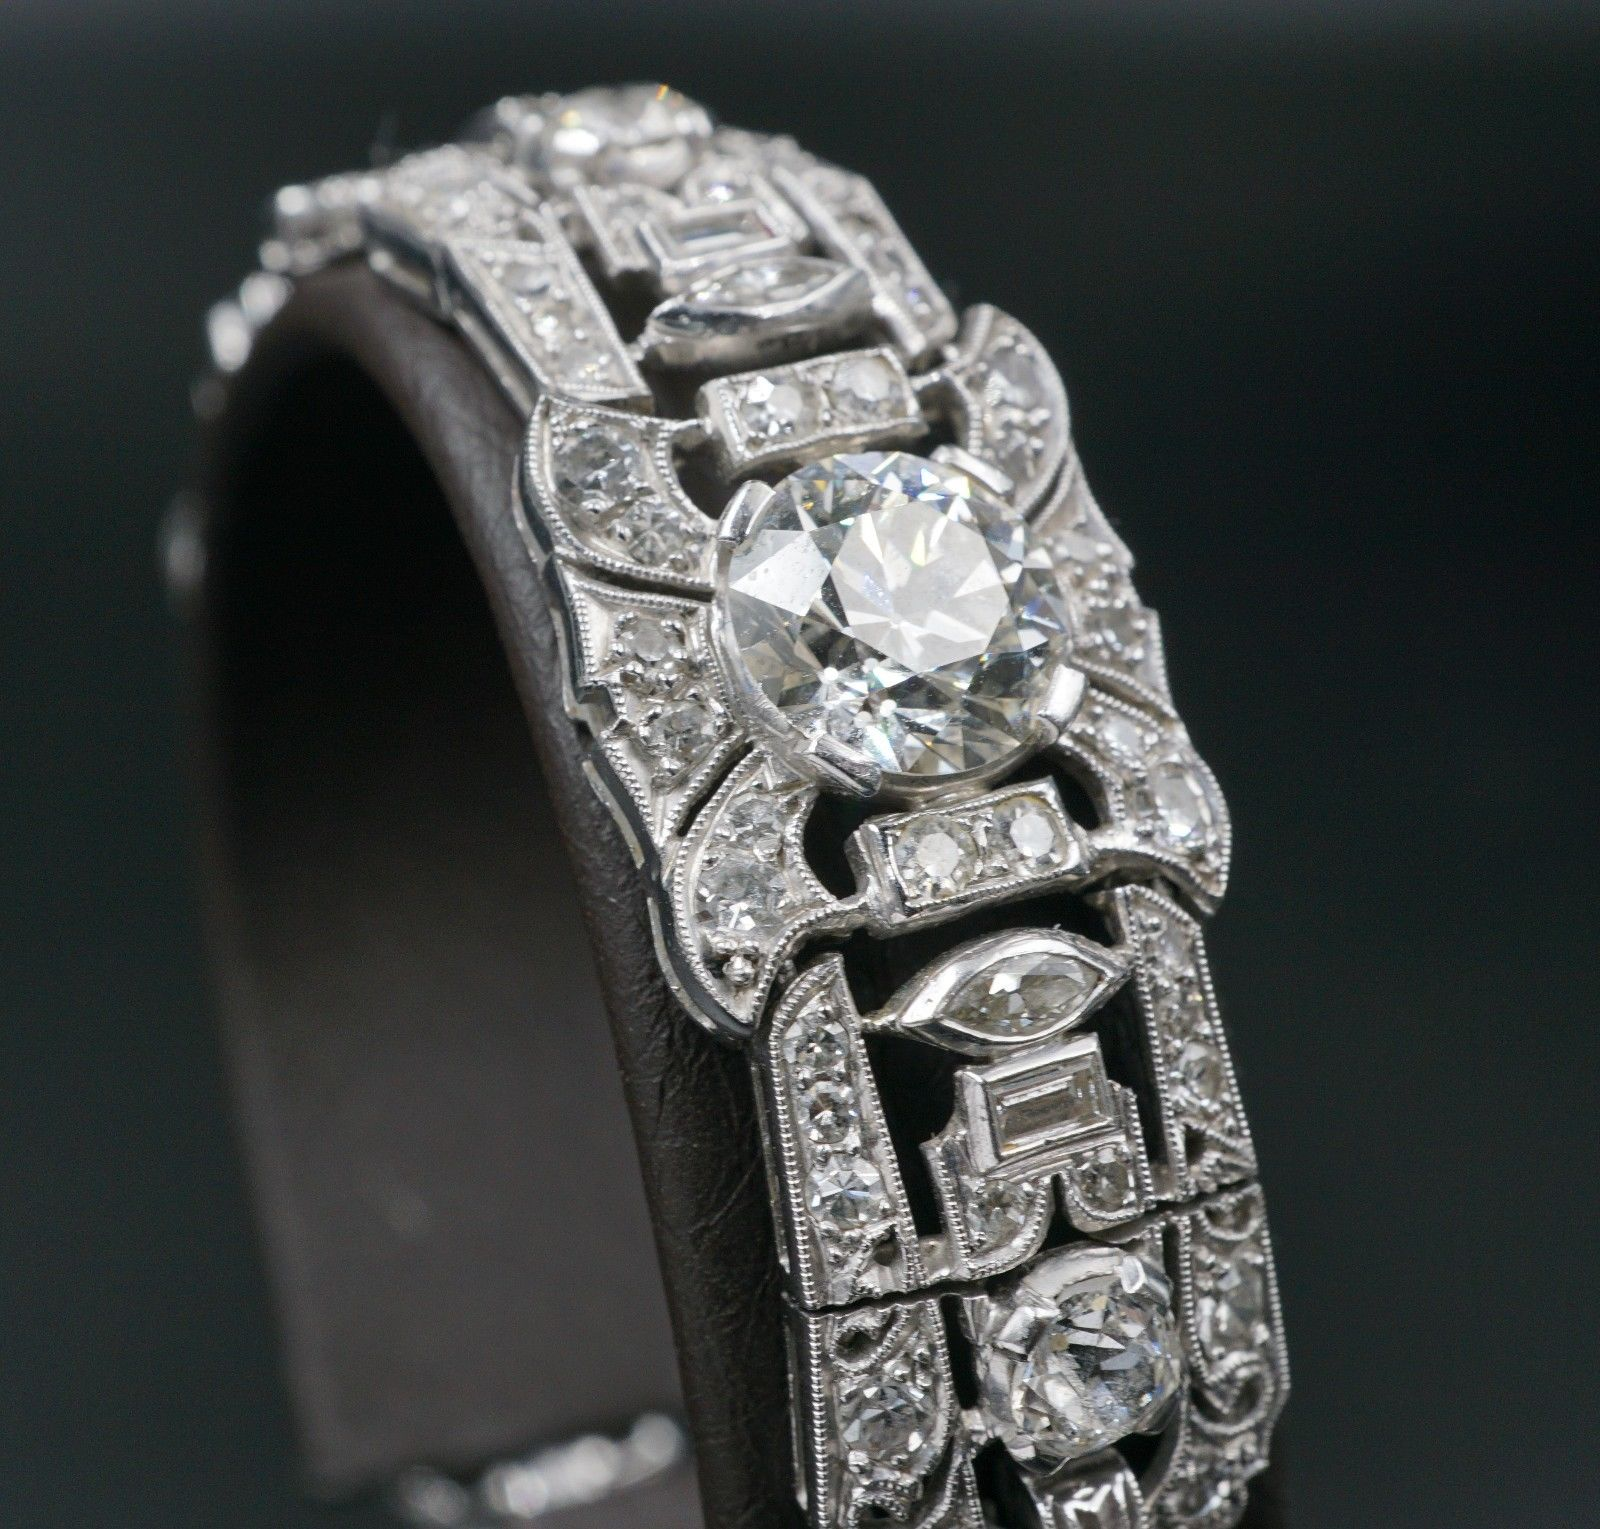 Bracelet: Edwardian era Art Deco design open filigree natural diamond link design, fastening with a fold-over locking clasp with safety chain | 205 diamonds | 8.91 carats |Appraisal: $110,500